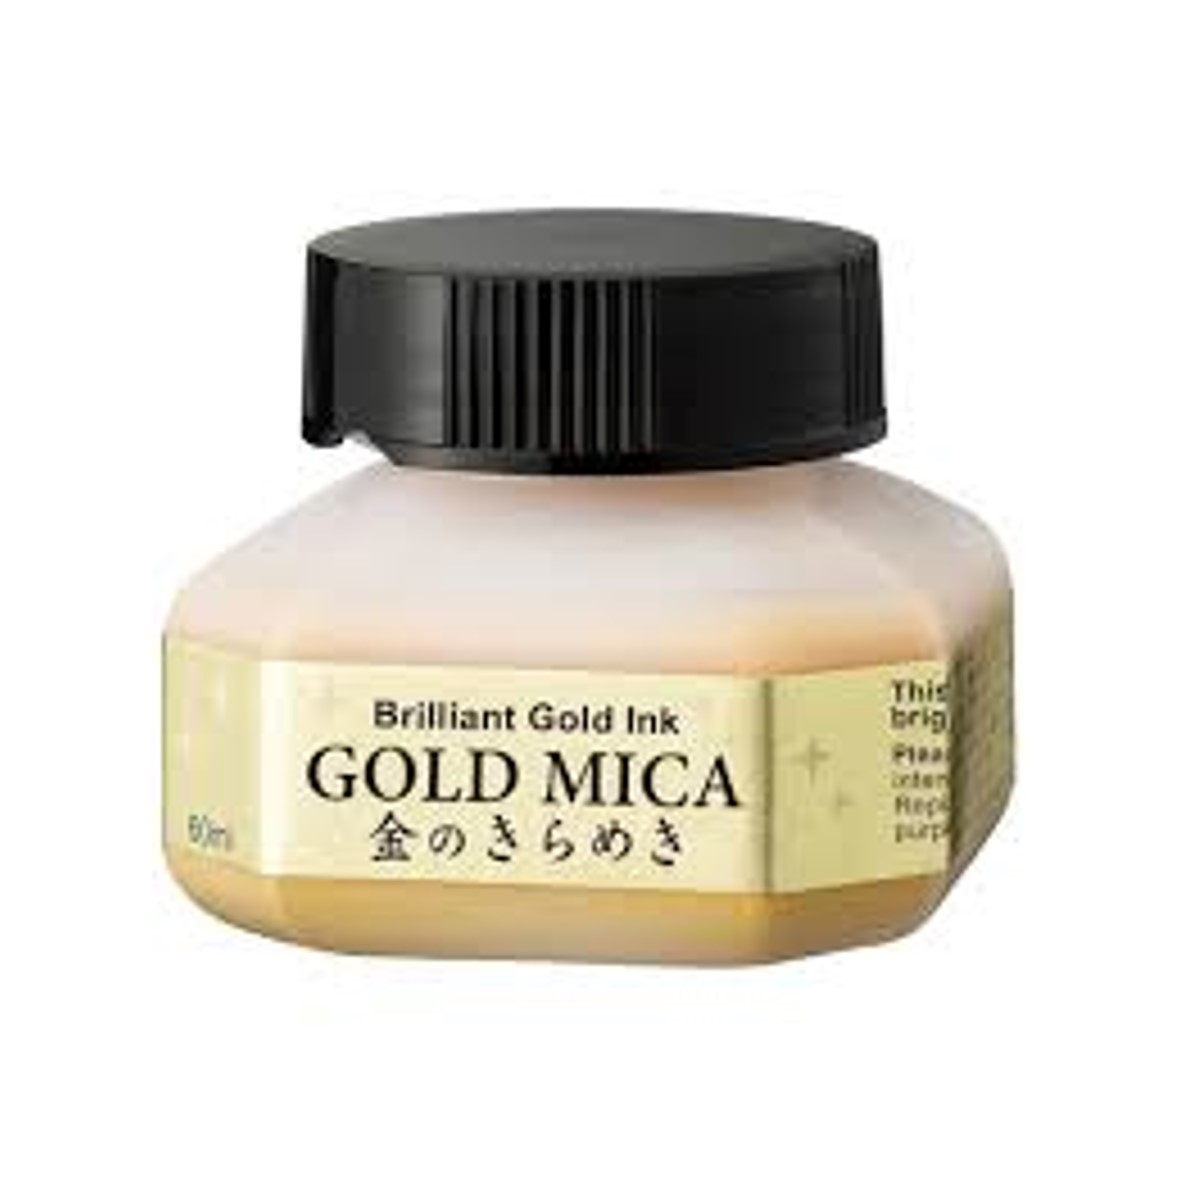 Gold Mica Ink 60ml